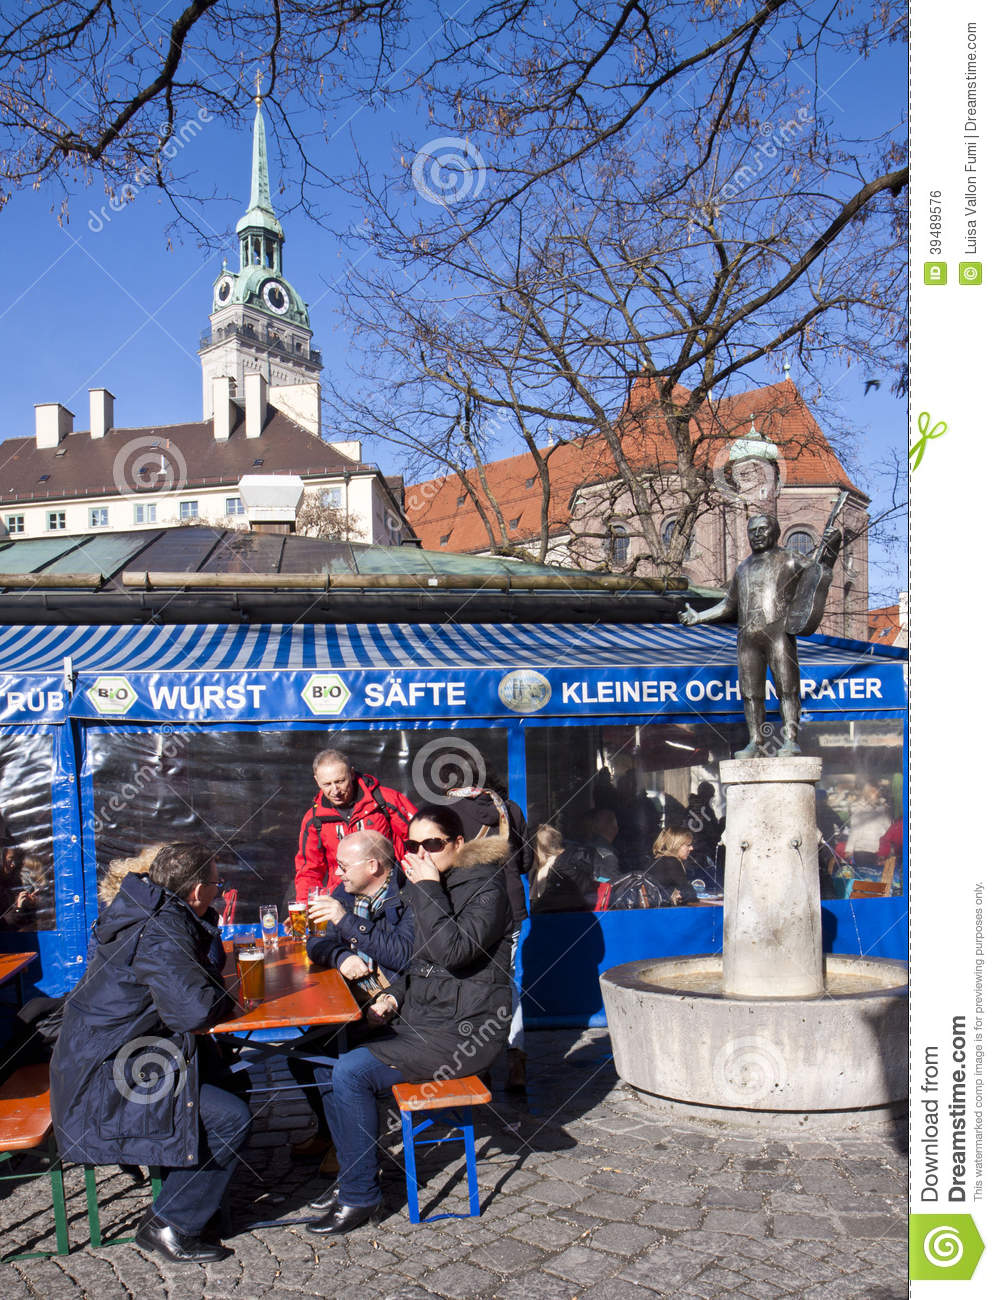 winter biergarten at viktualien markt in munich editorial photo image 39489576. Black Bedroom Furniture Sets. Home Design Ideas